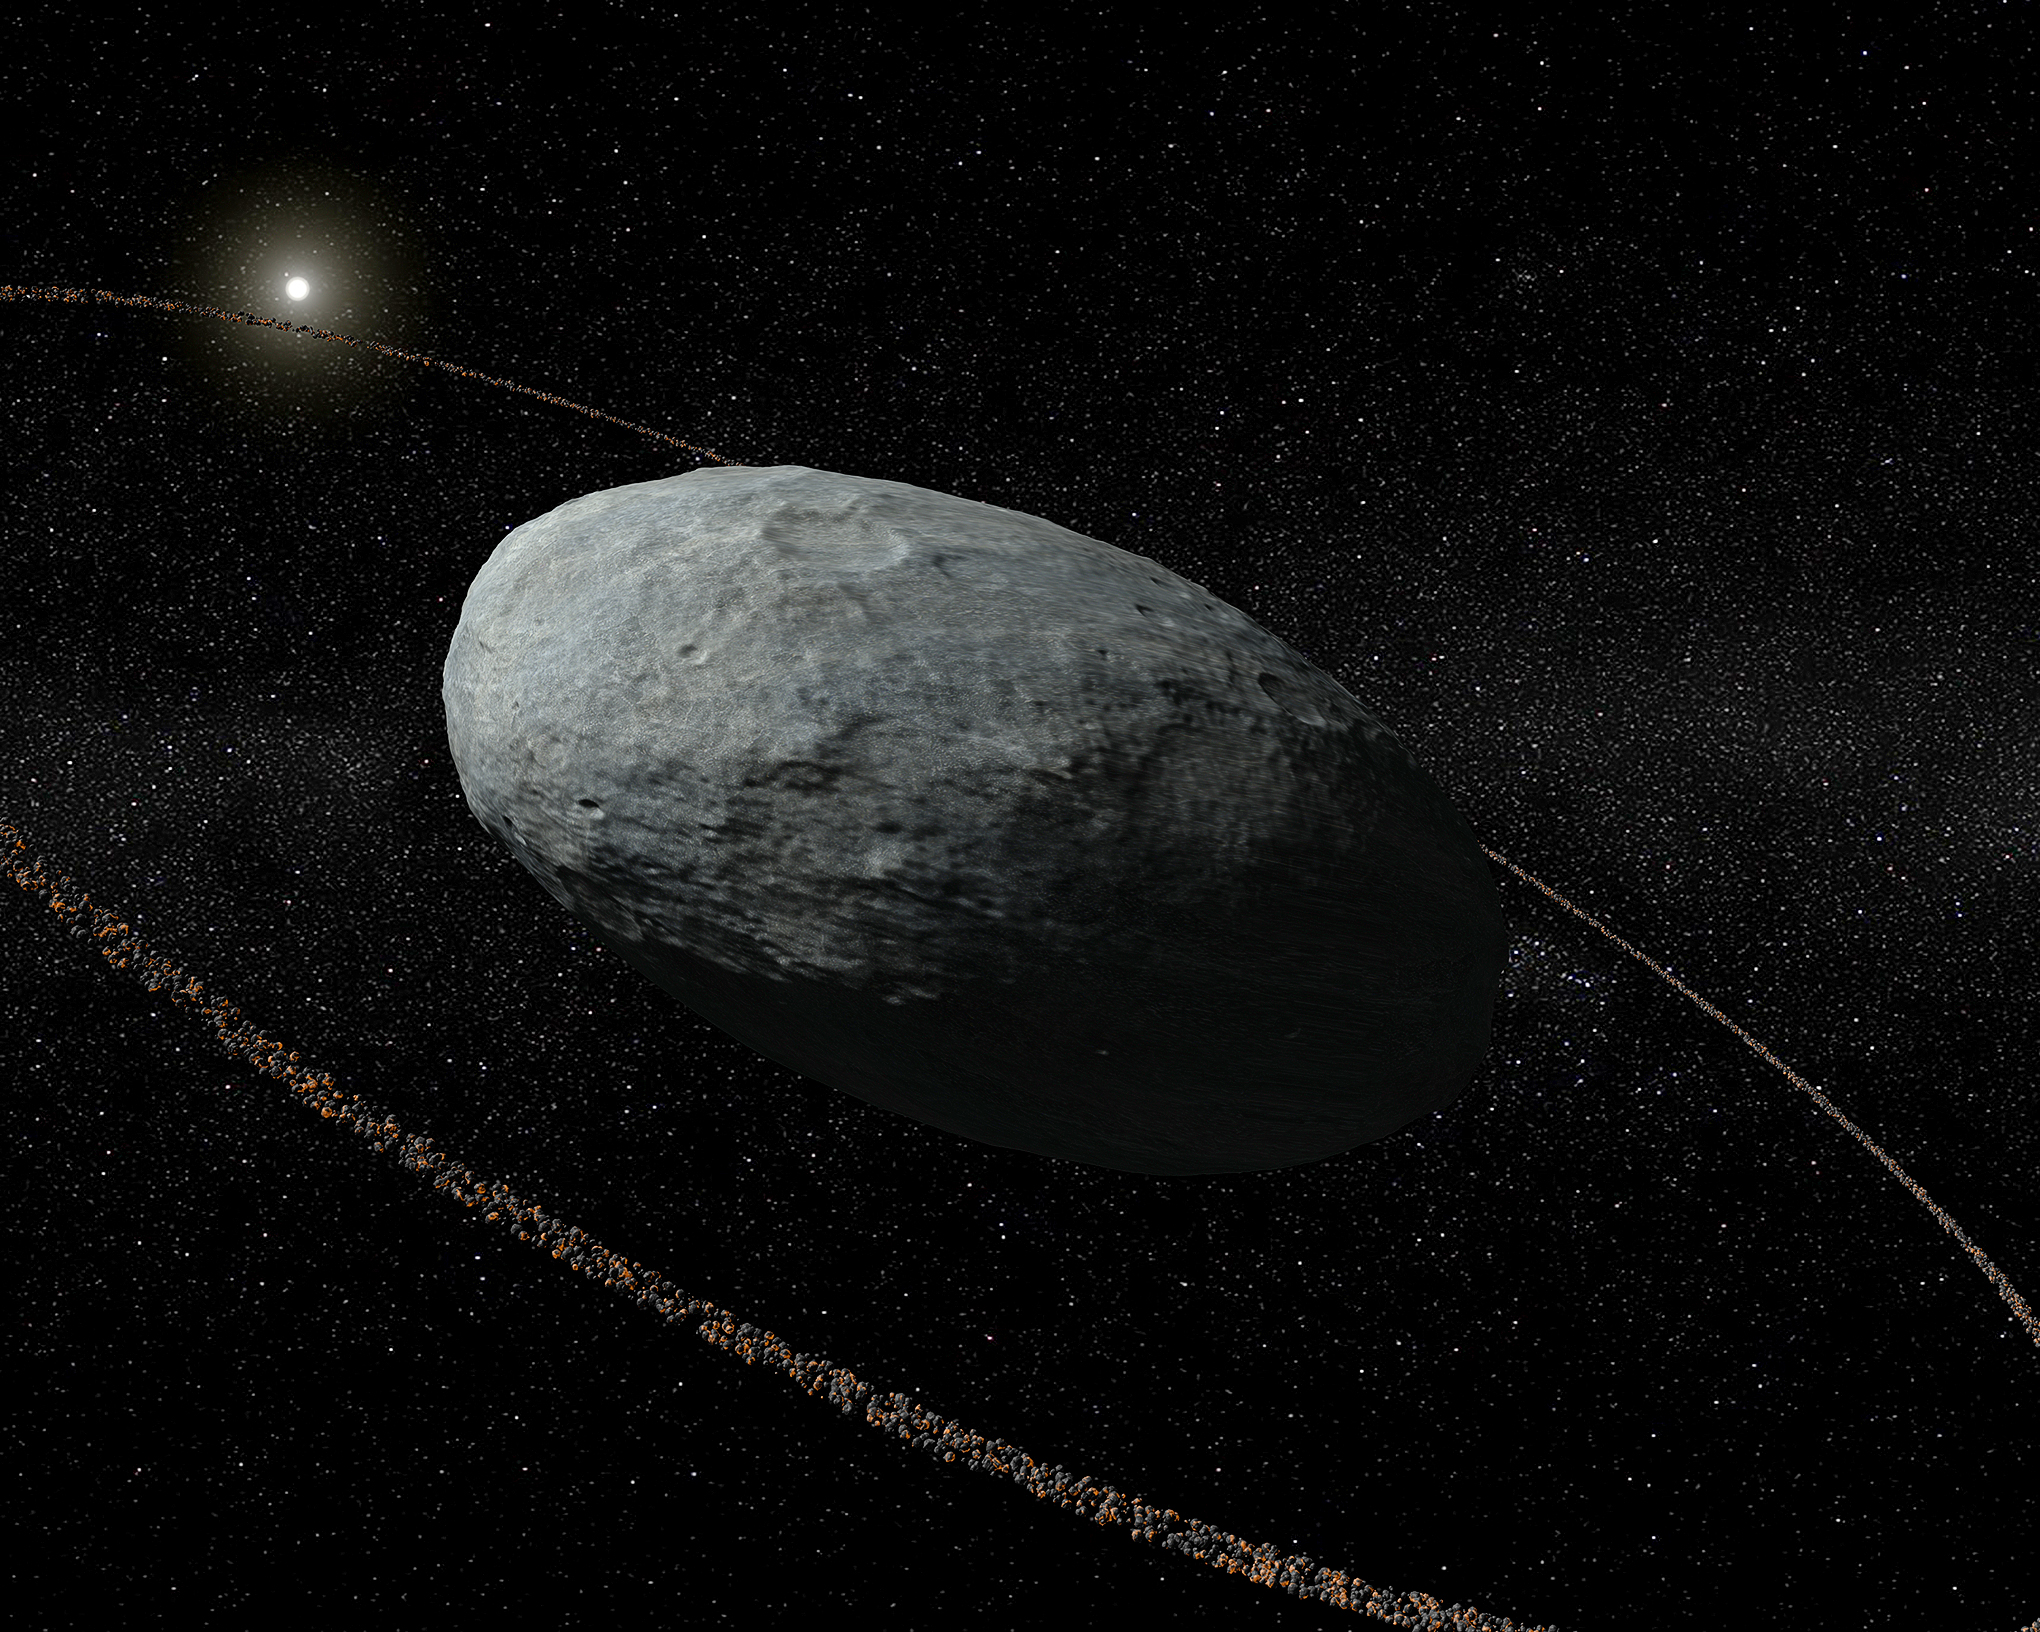 dwarf planets haumea - photo #15